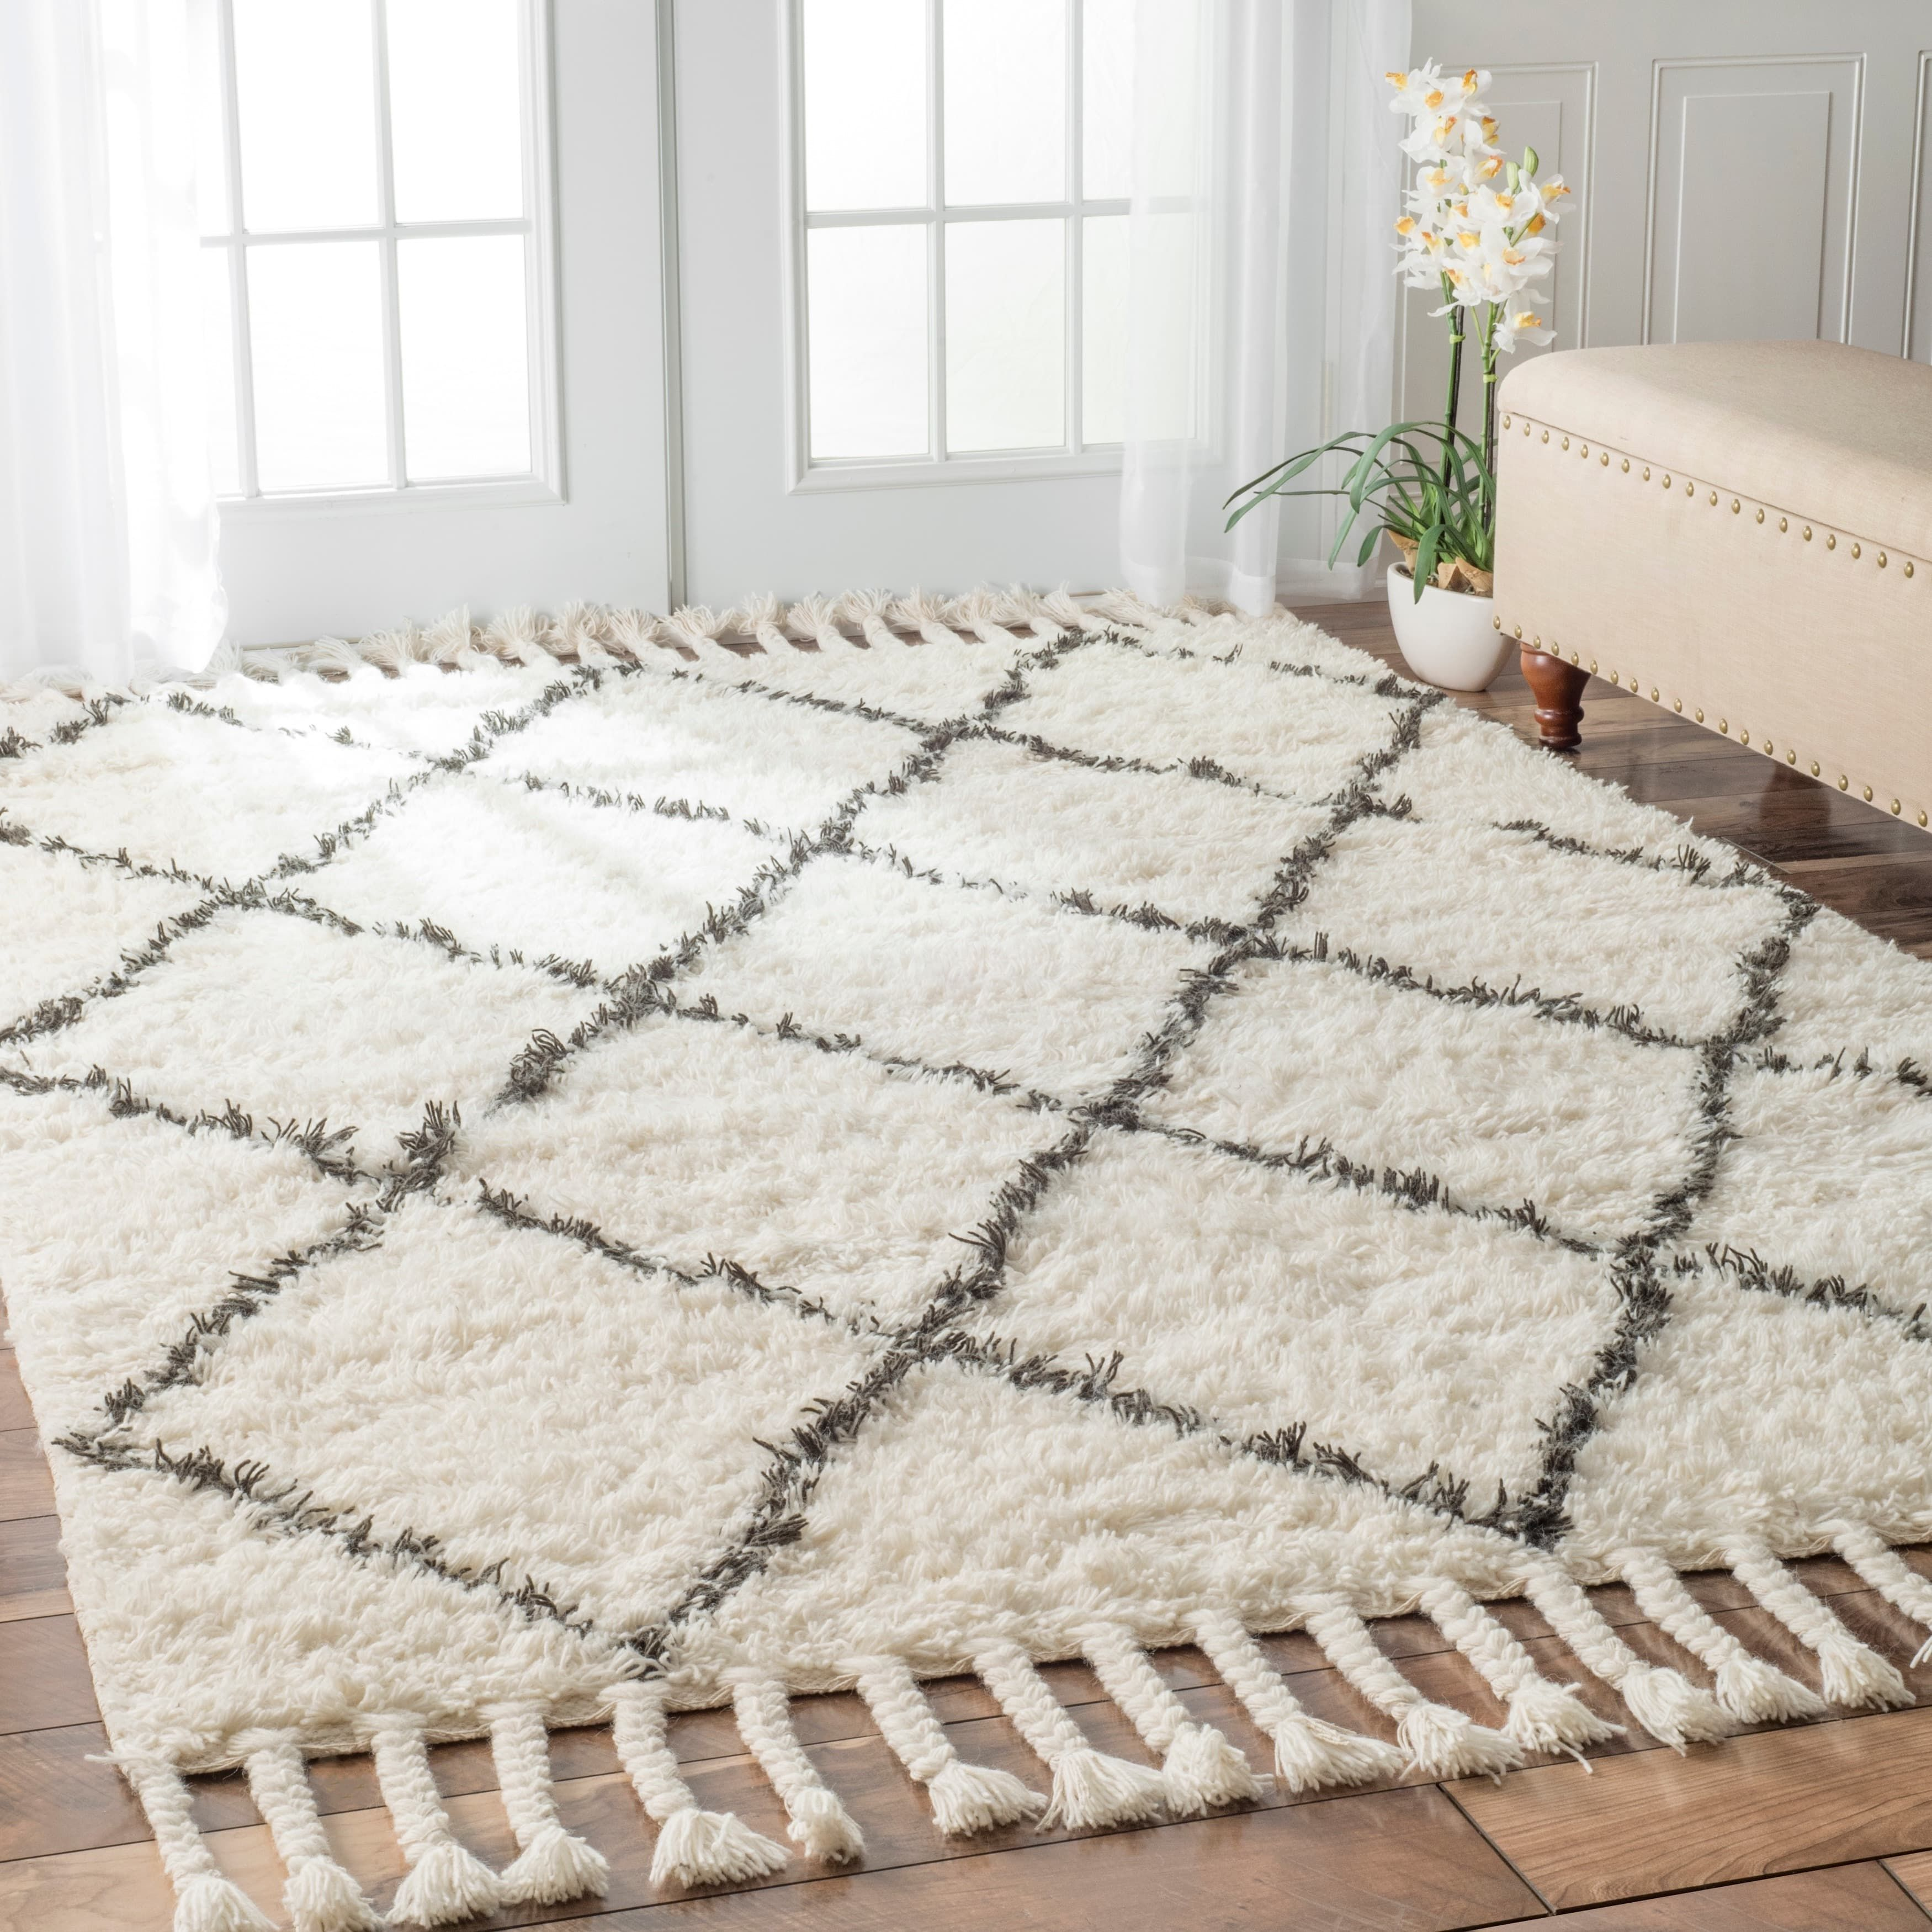 13 Beautiful Beni Ourain-Style Rugs Under $300 | Beni ourain, Wool ...